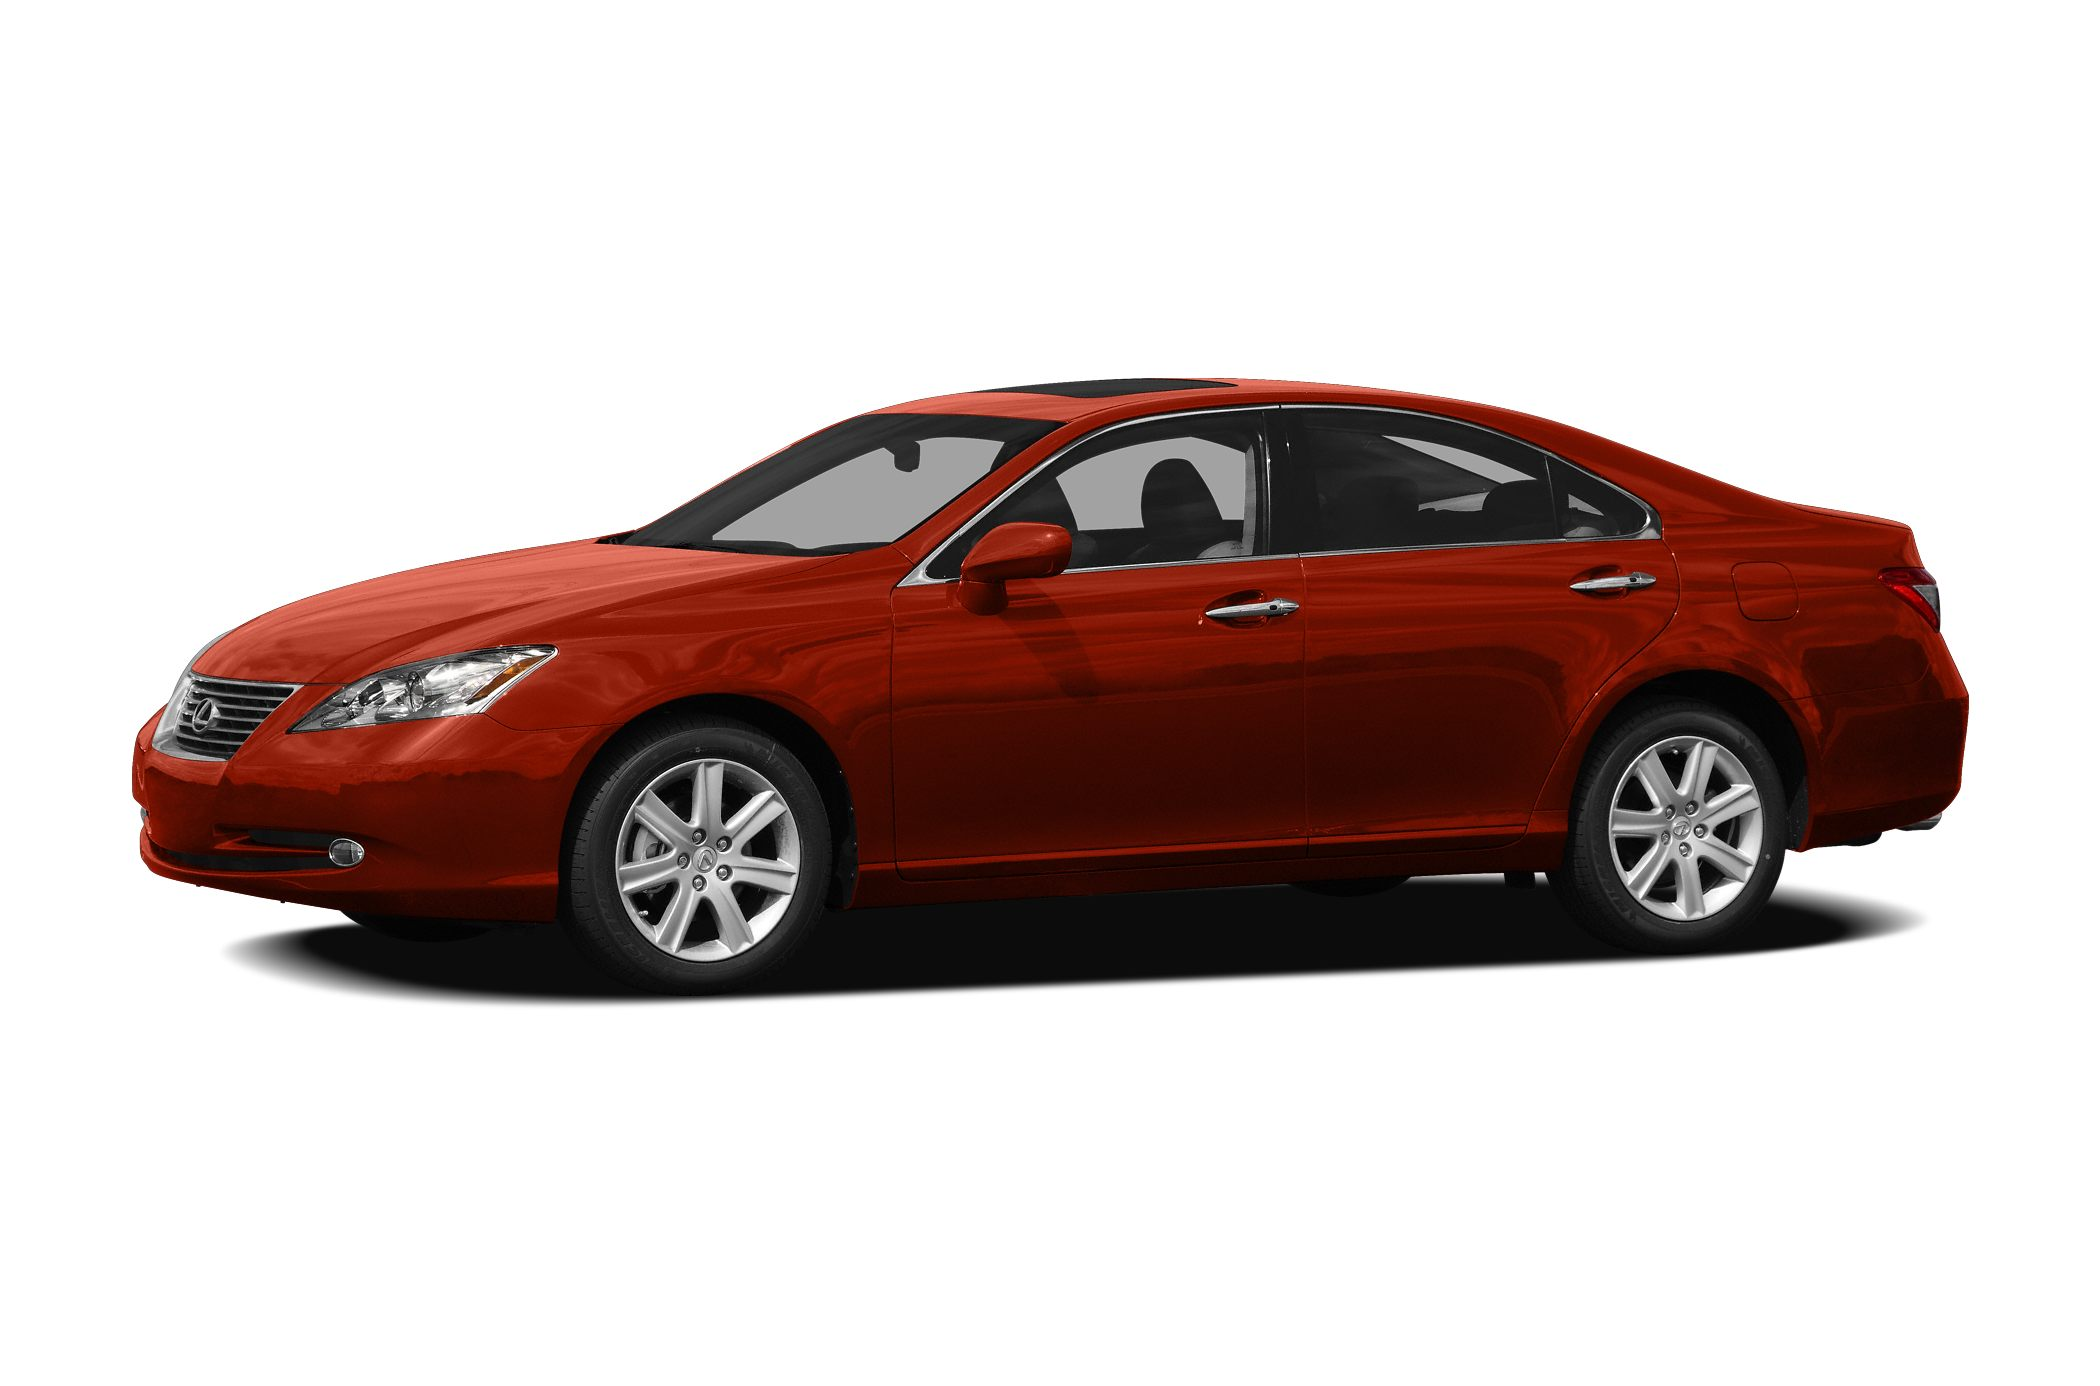 2008 Lexus ES 350 Base Prices are PLUS tax tag title fee 799 Pre-Delivery Service Fee and 1